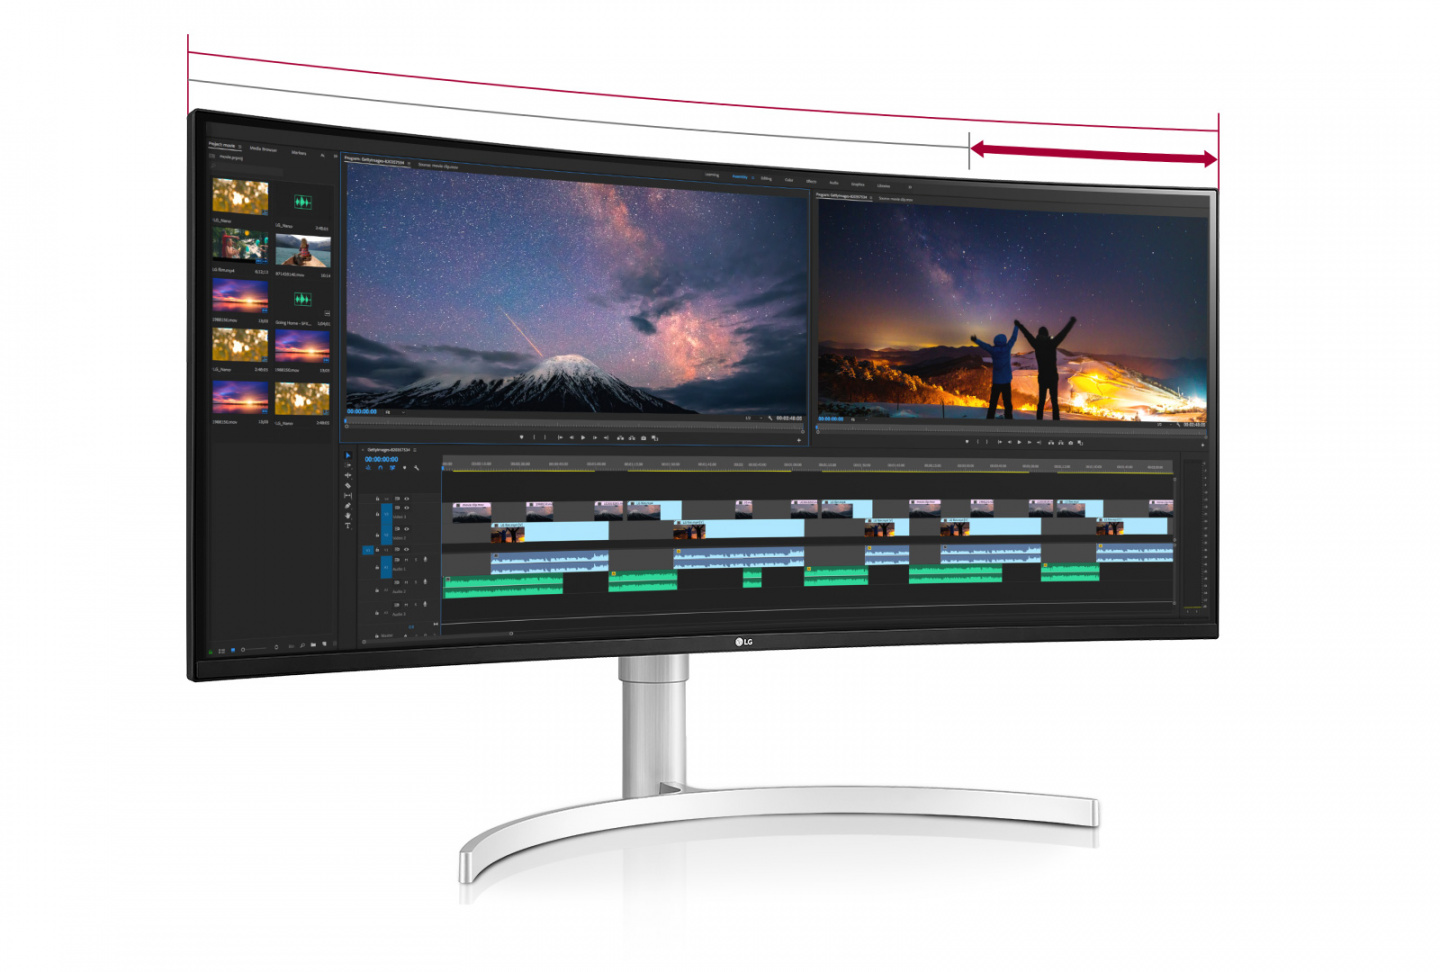 The monitor with aspect ratios of 21:9